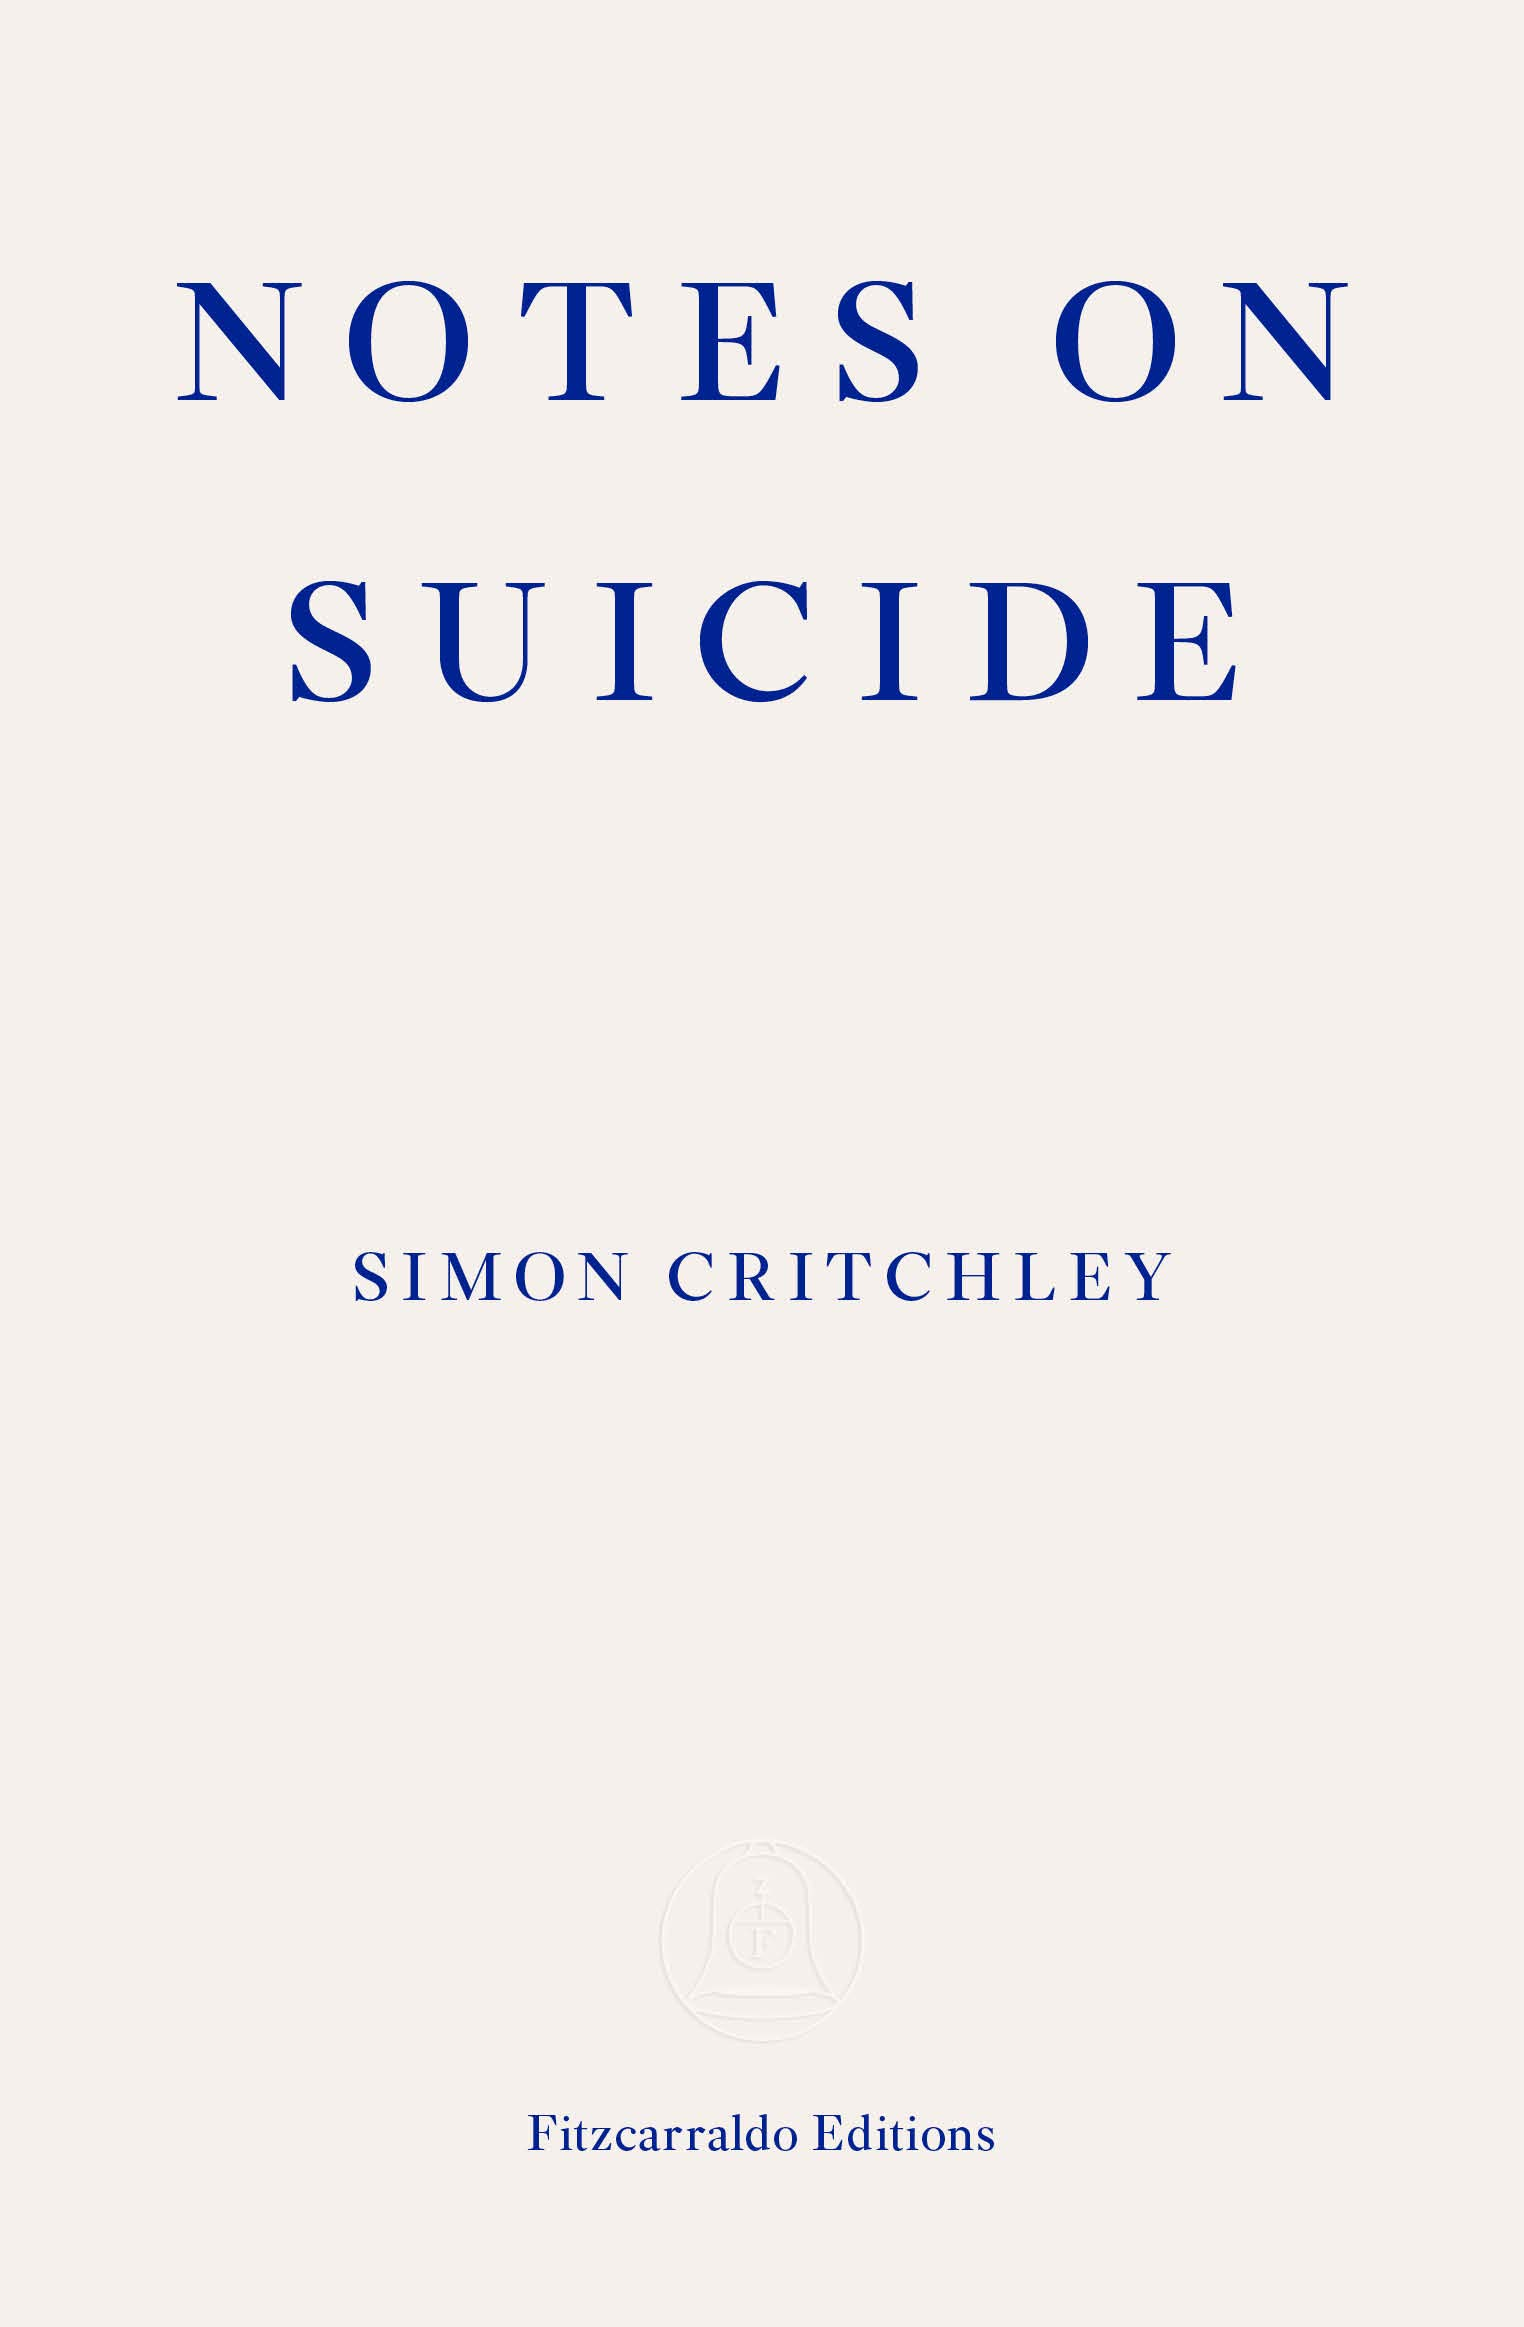 Notes on Suicide - The book